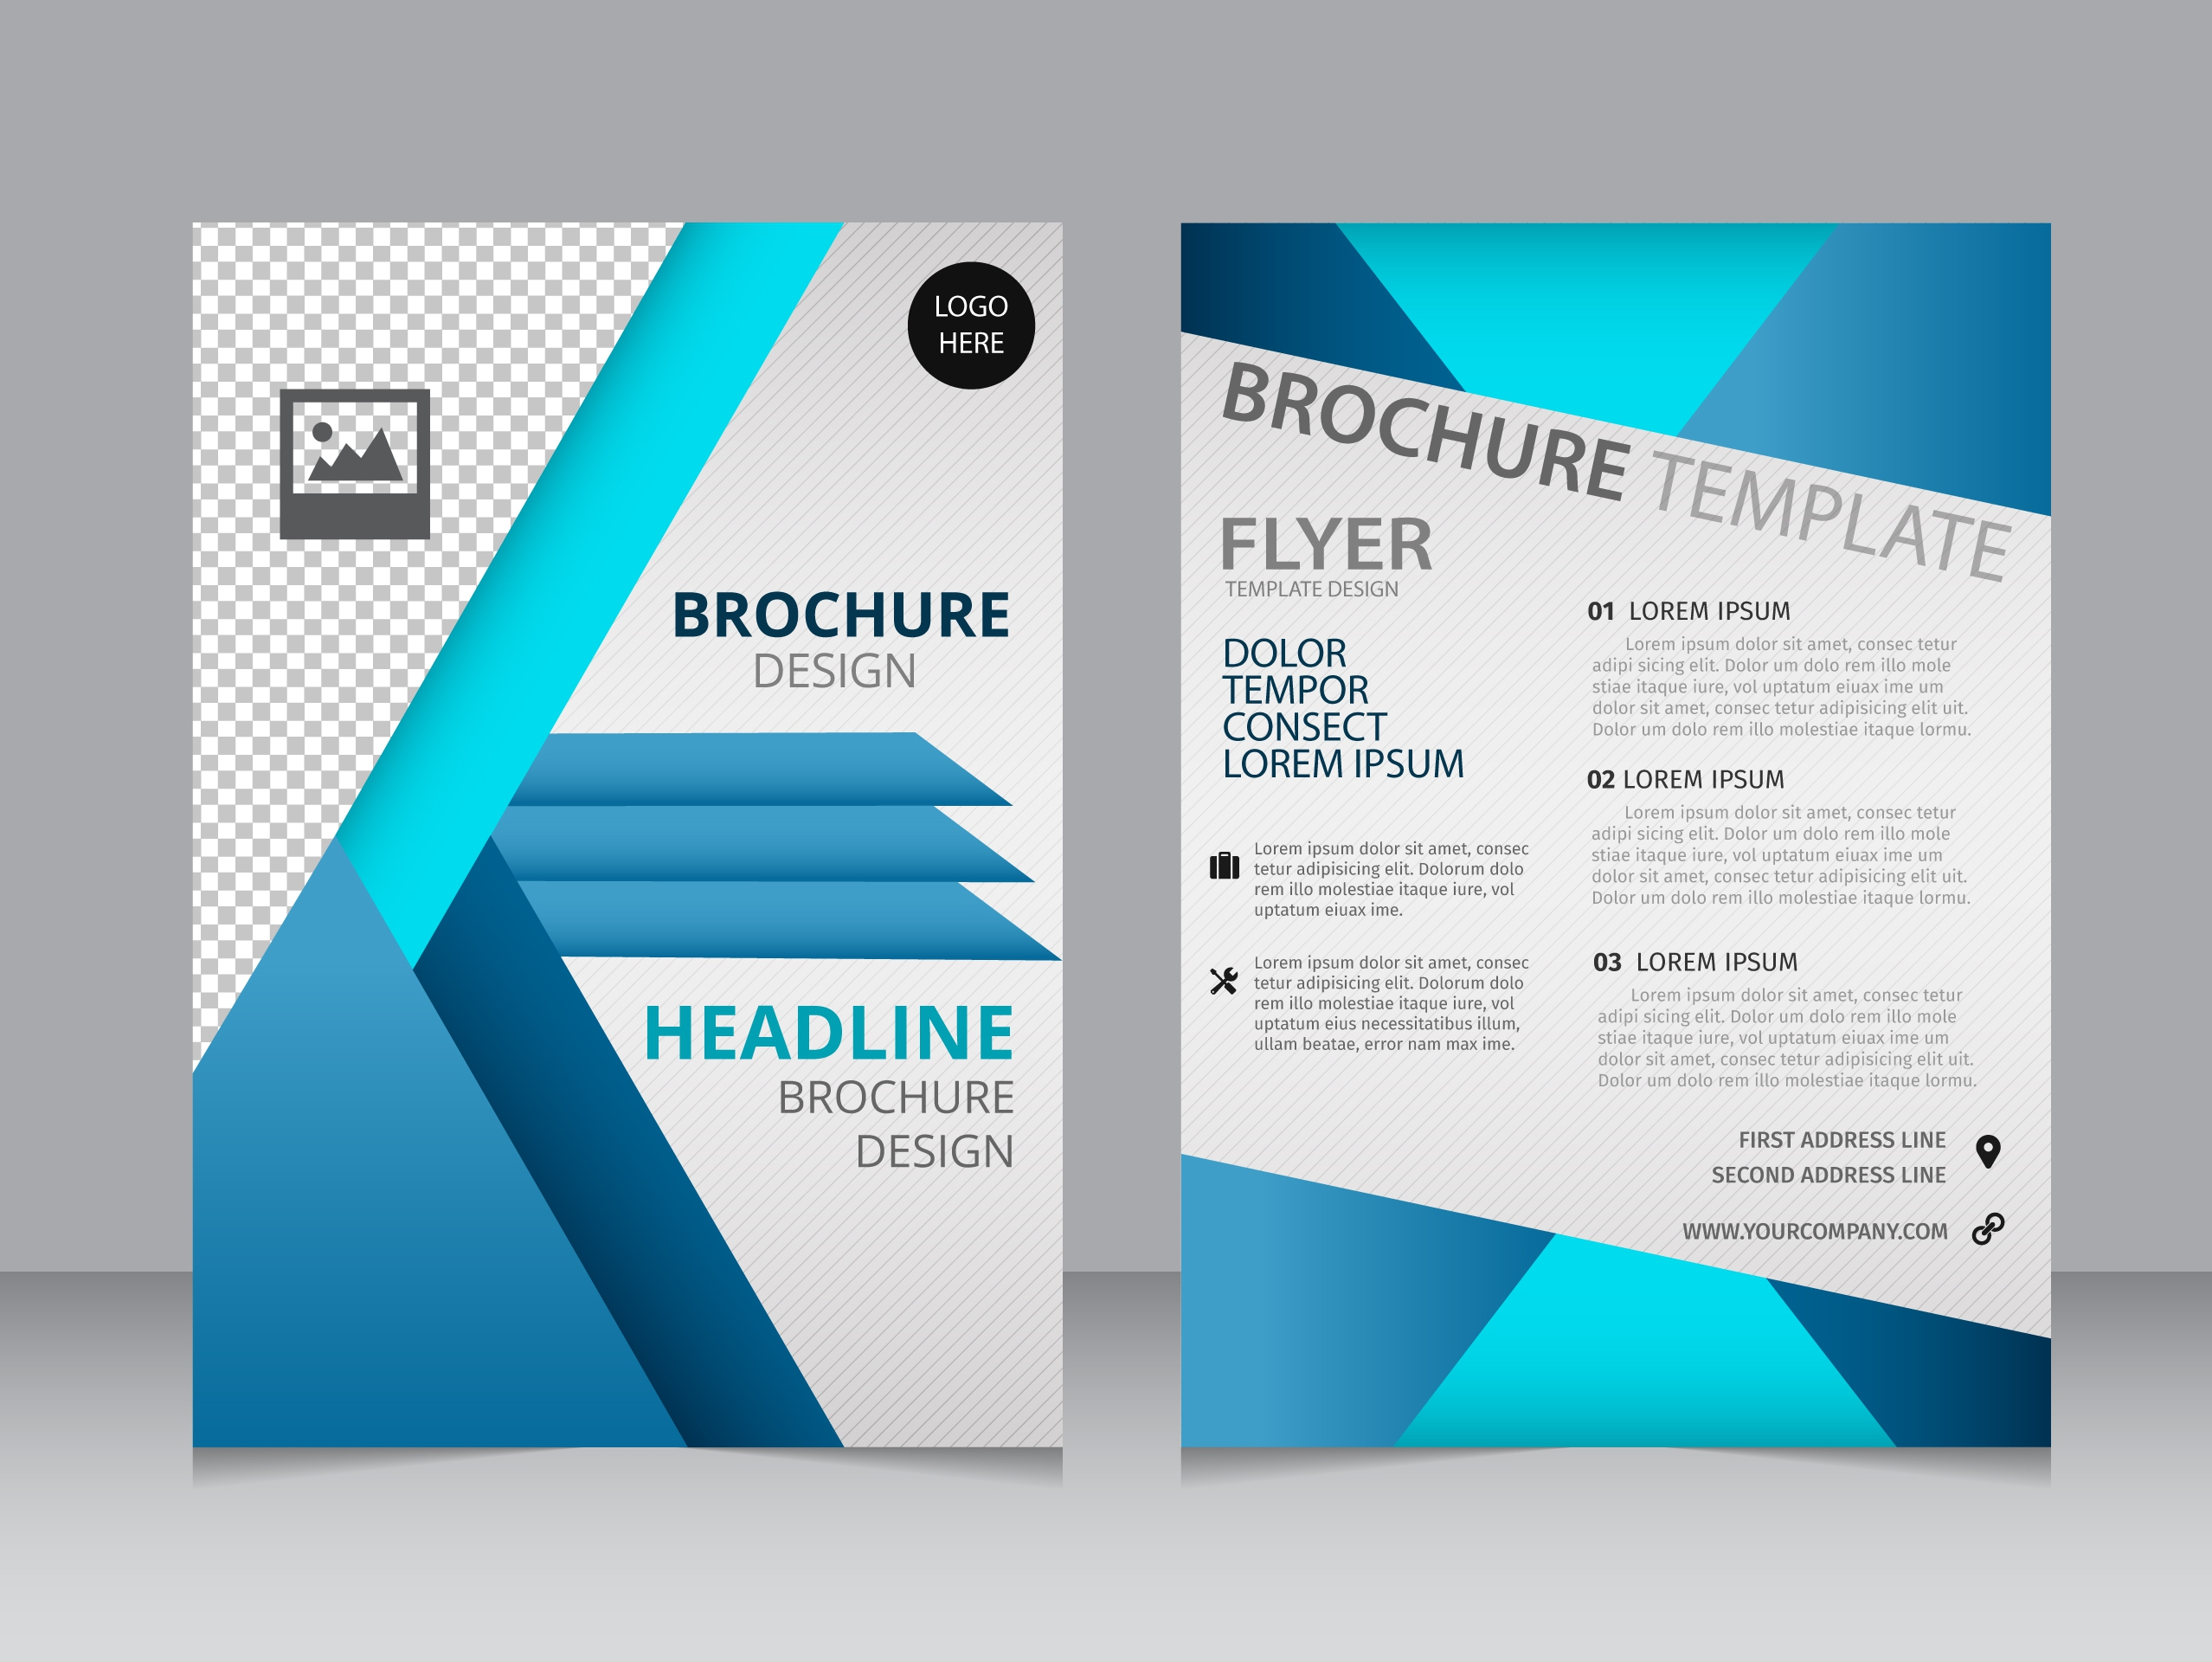 free pdf brochure templates - 11 free sample travel brochure templates printable samples